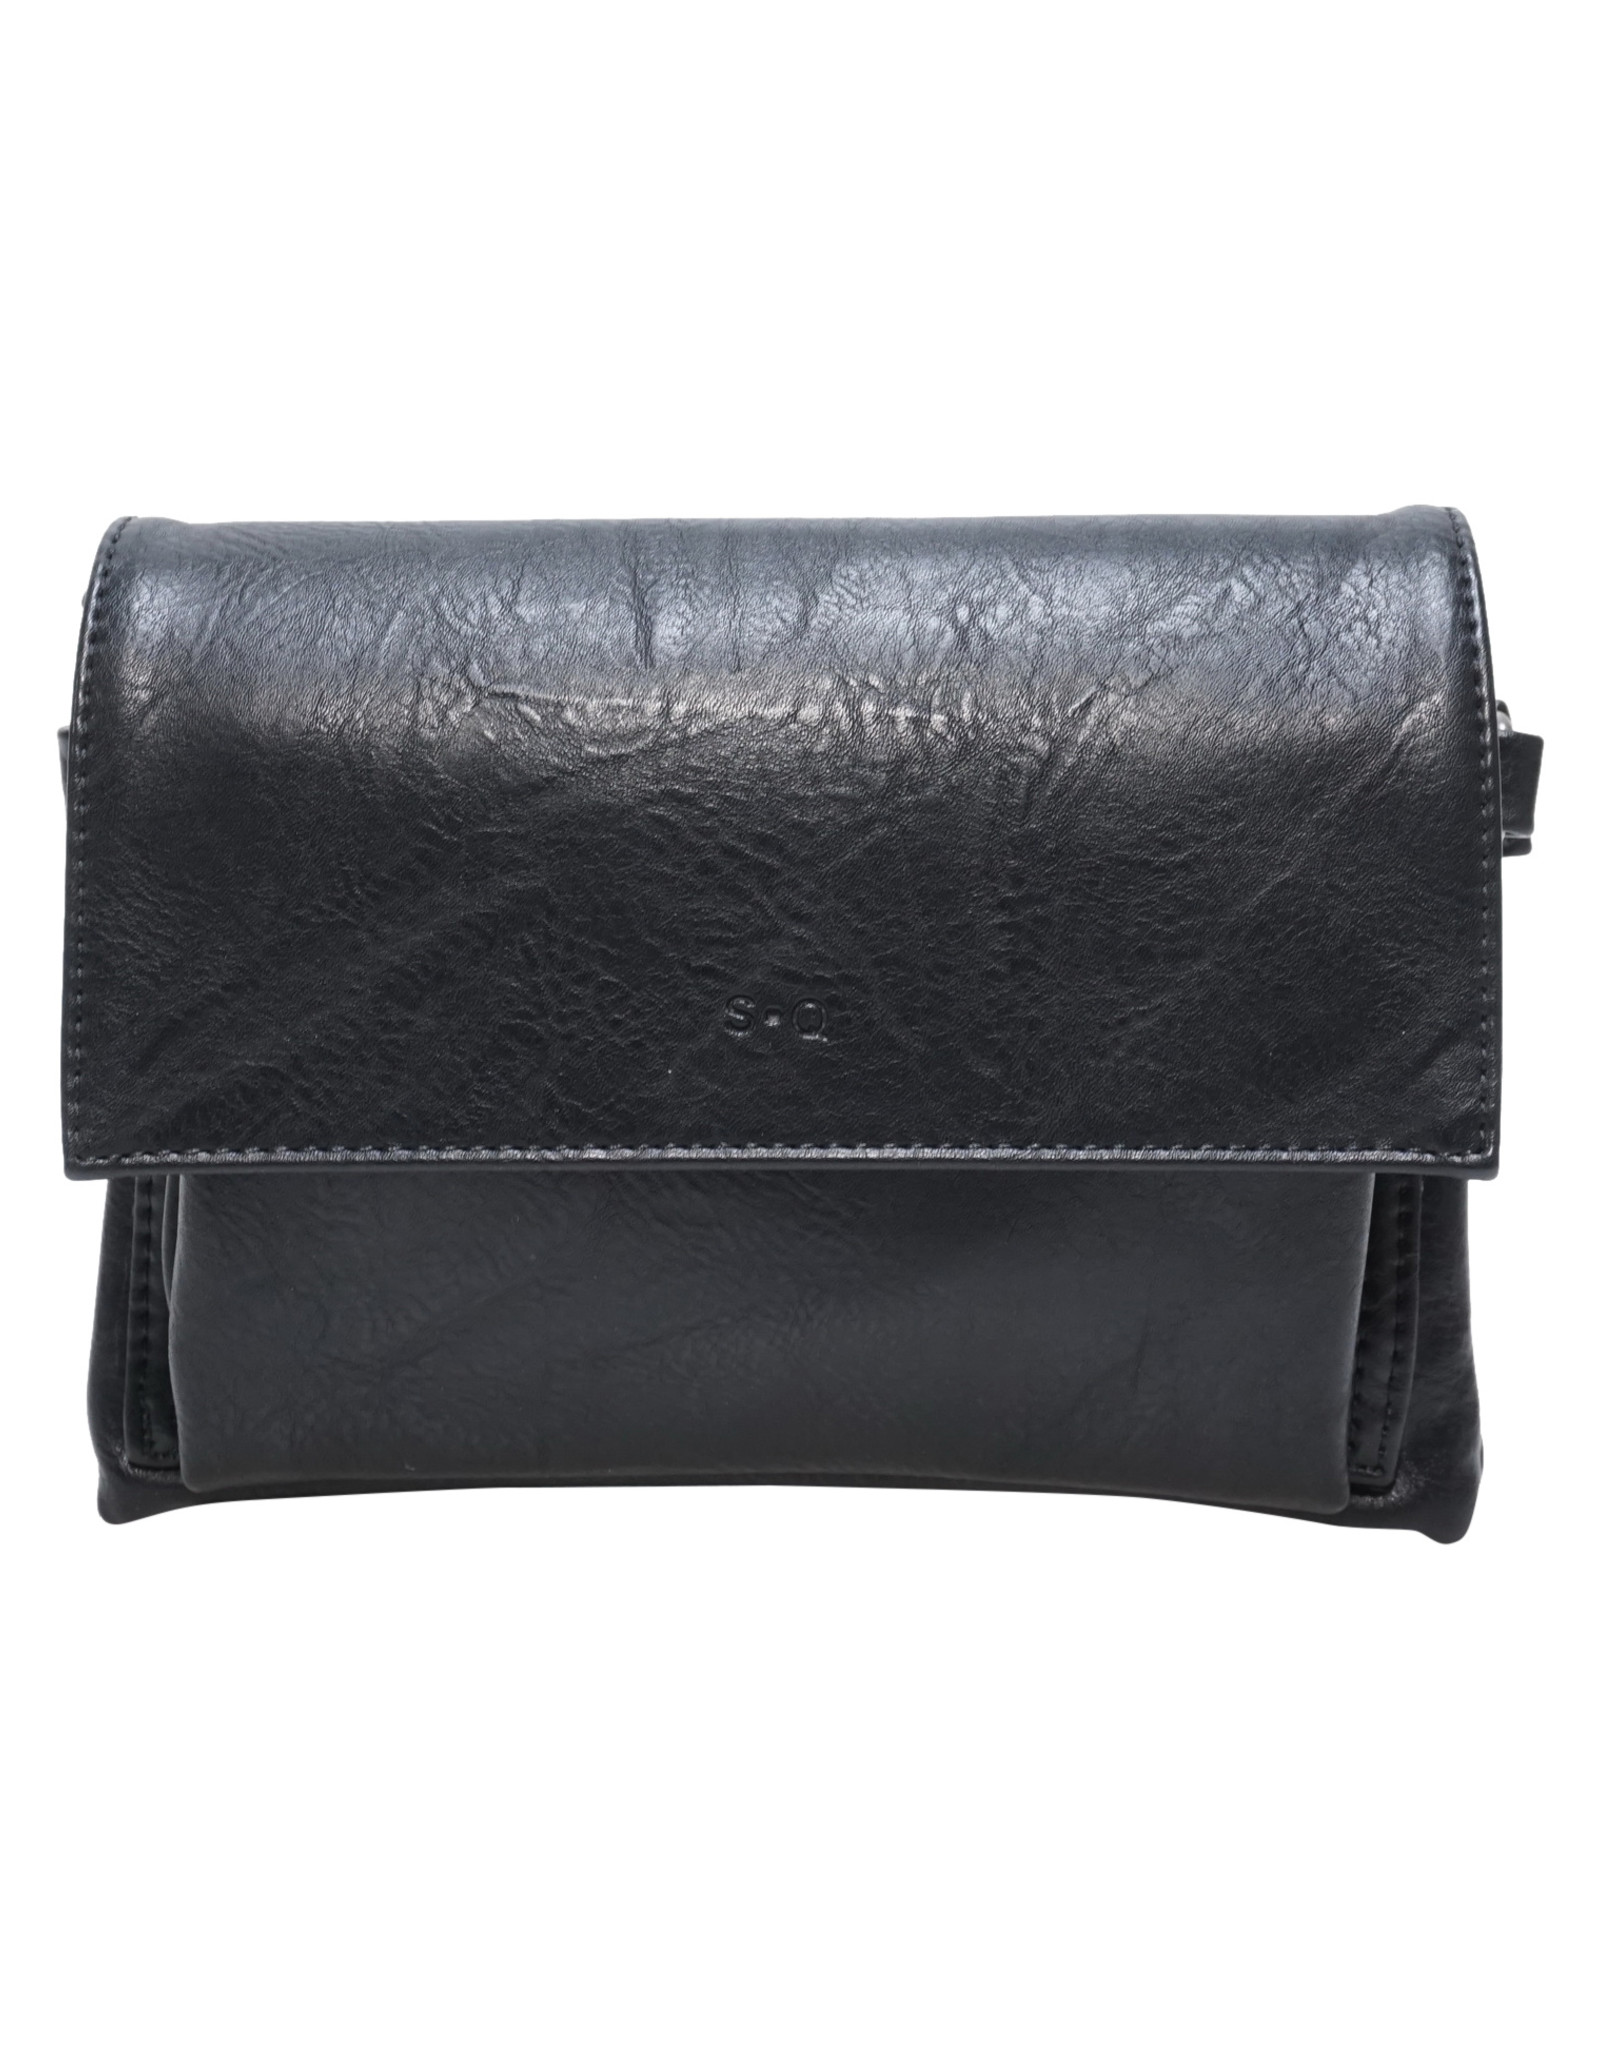 Black Mandy Belt Bag